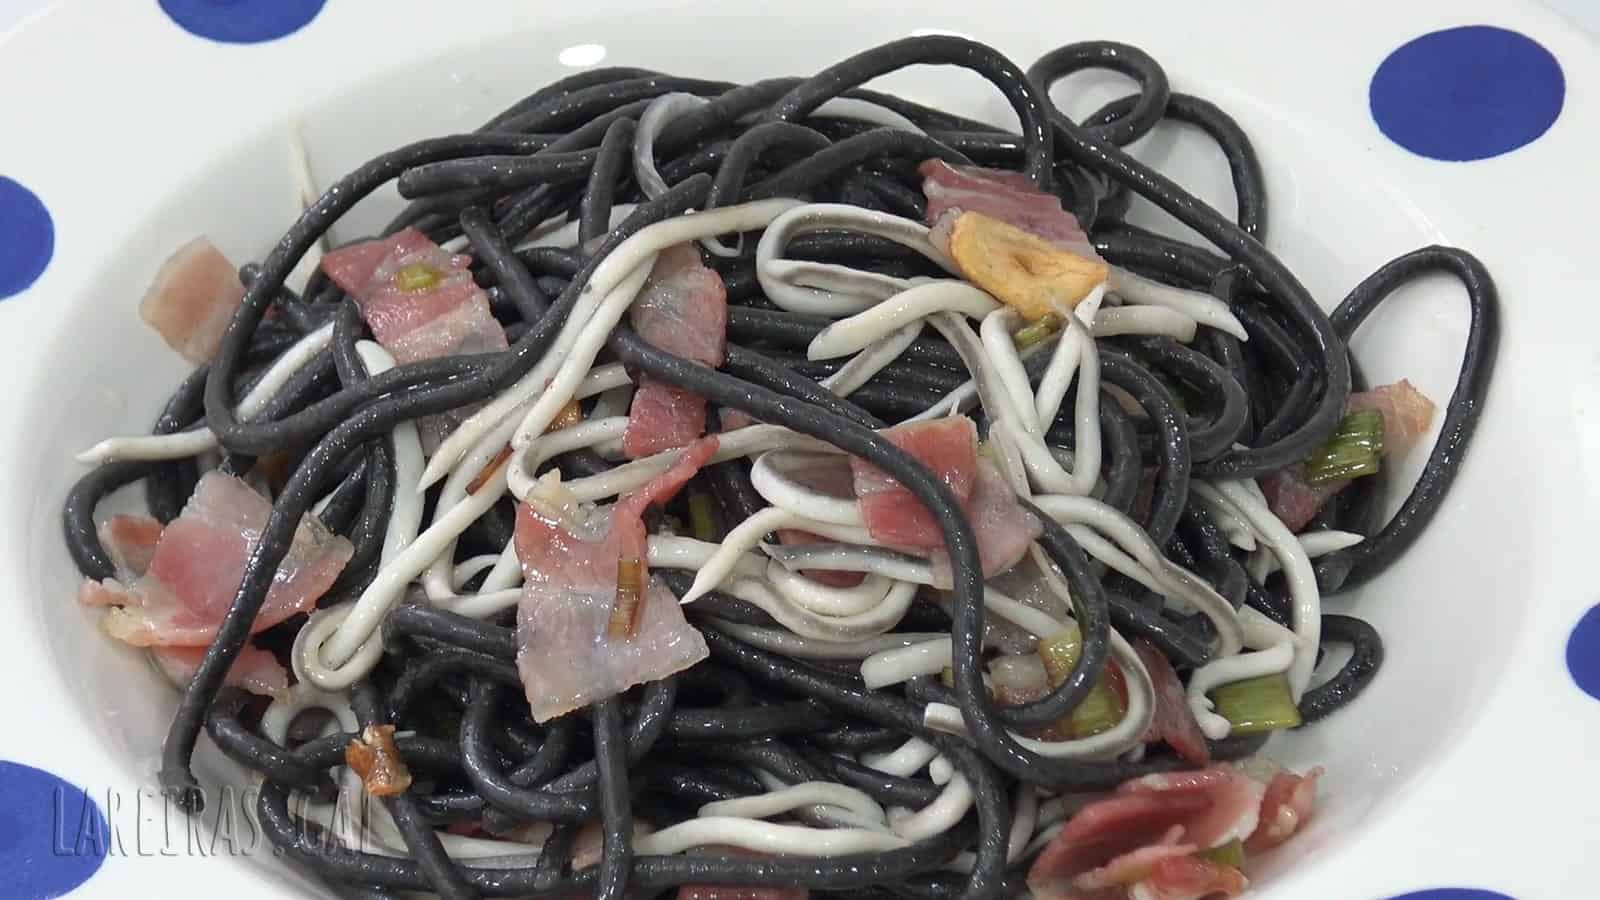 Sautéed black spaghetti with bacon and gulas